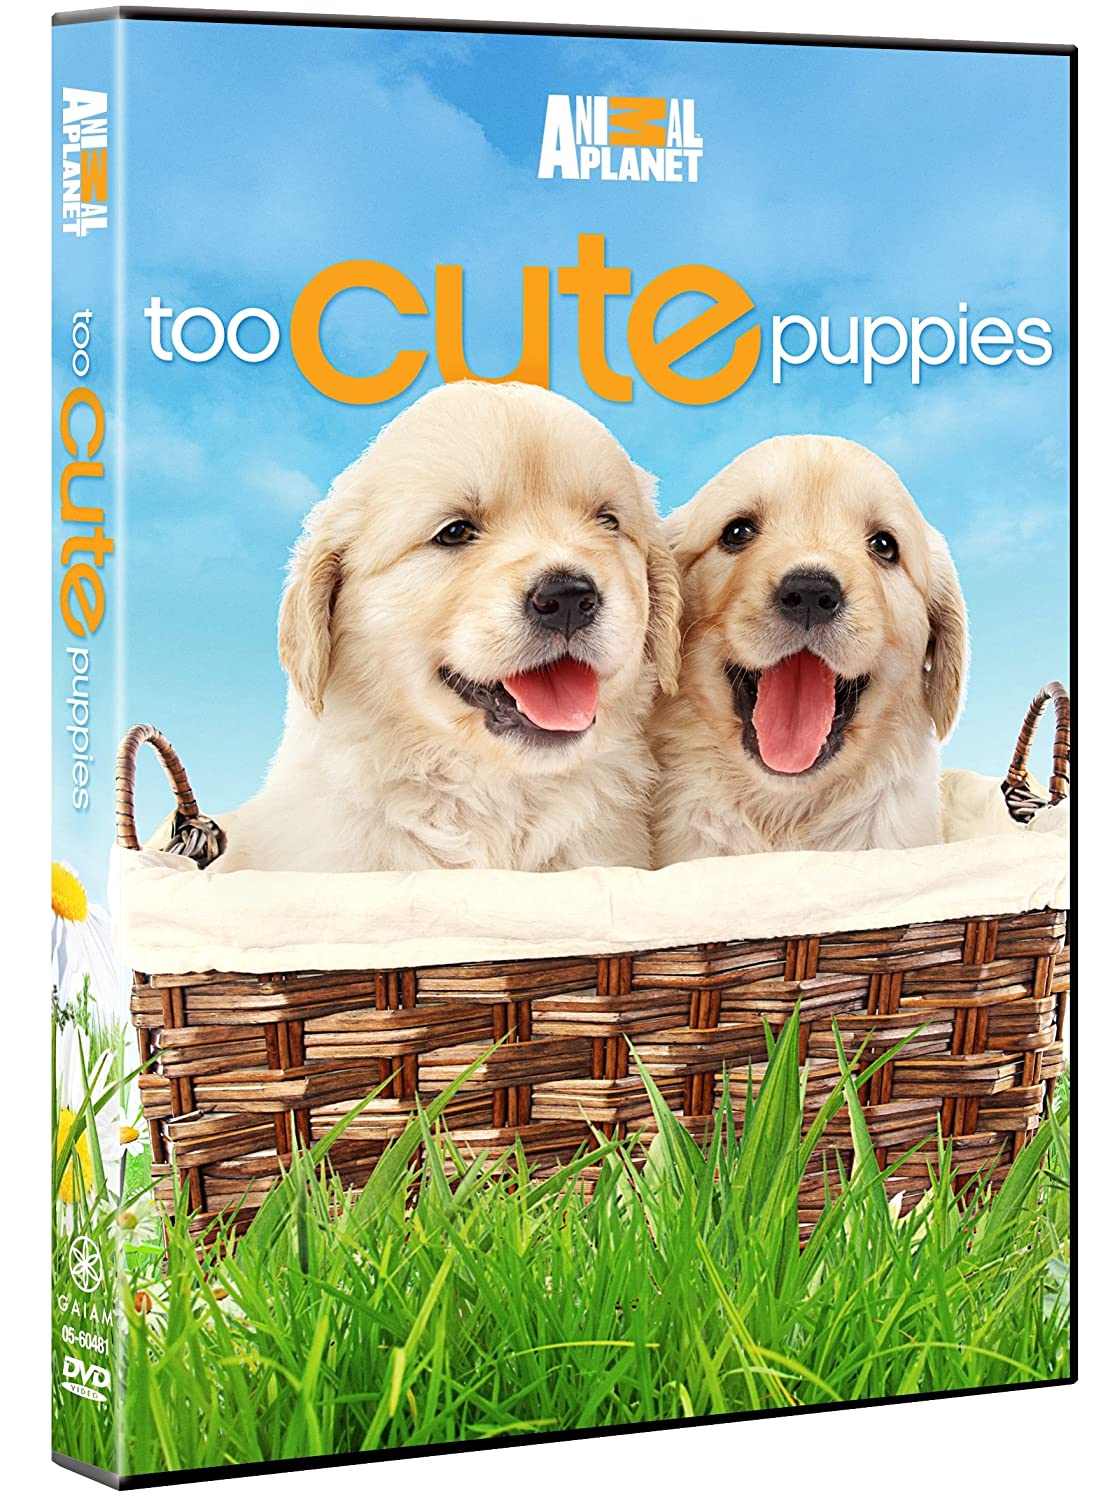 Amazon.com: Too Cute Puppies: Puppies, Animal Planet: Movies & TV